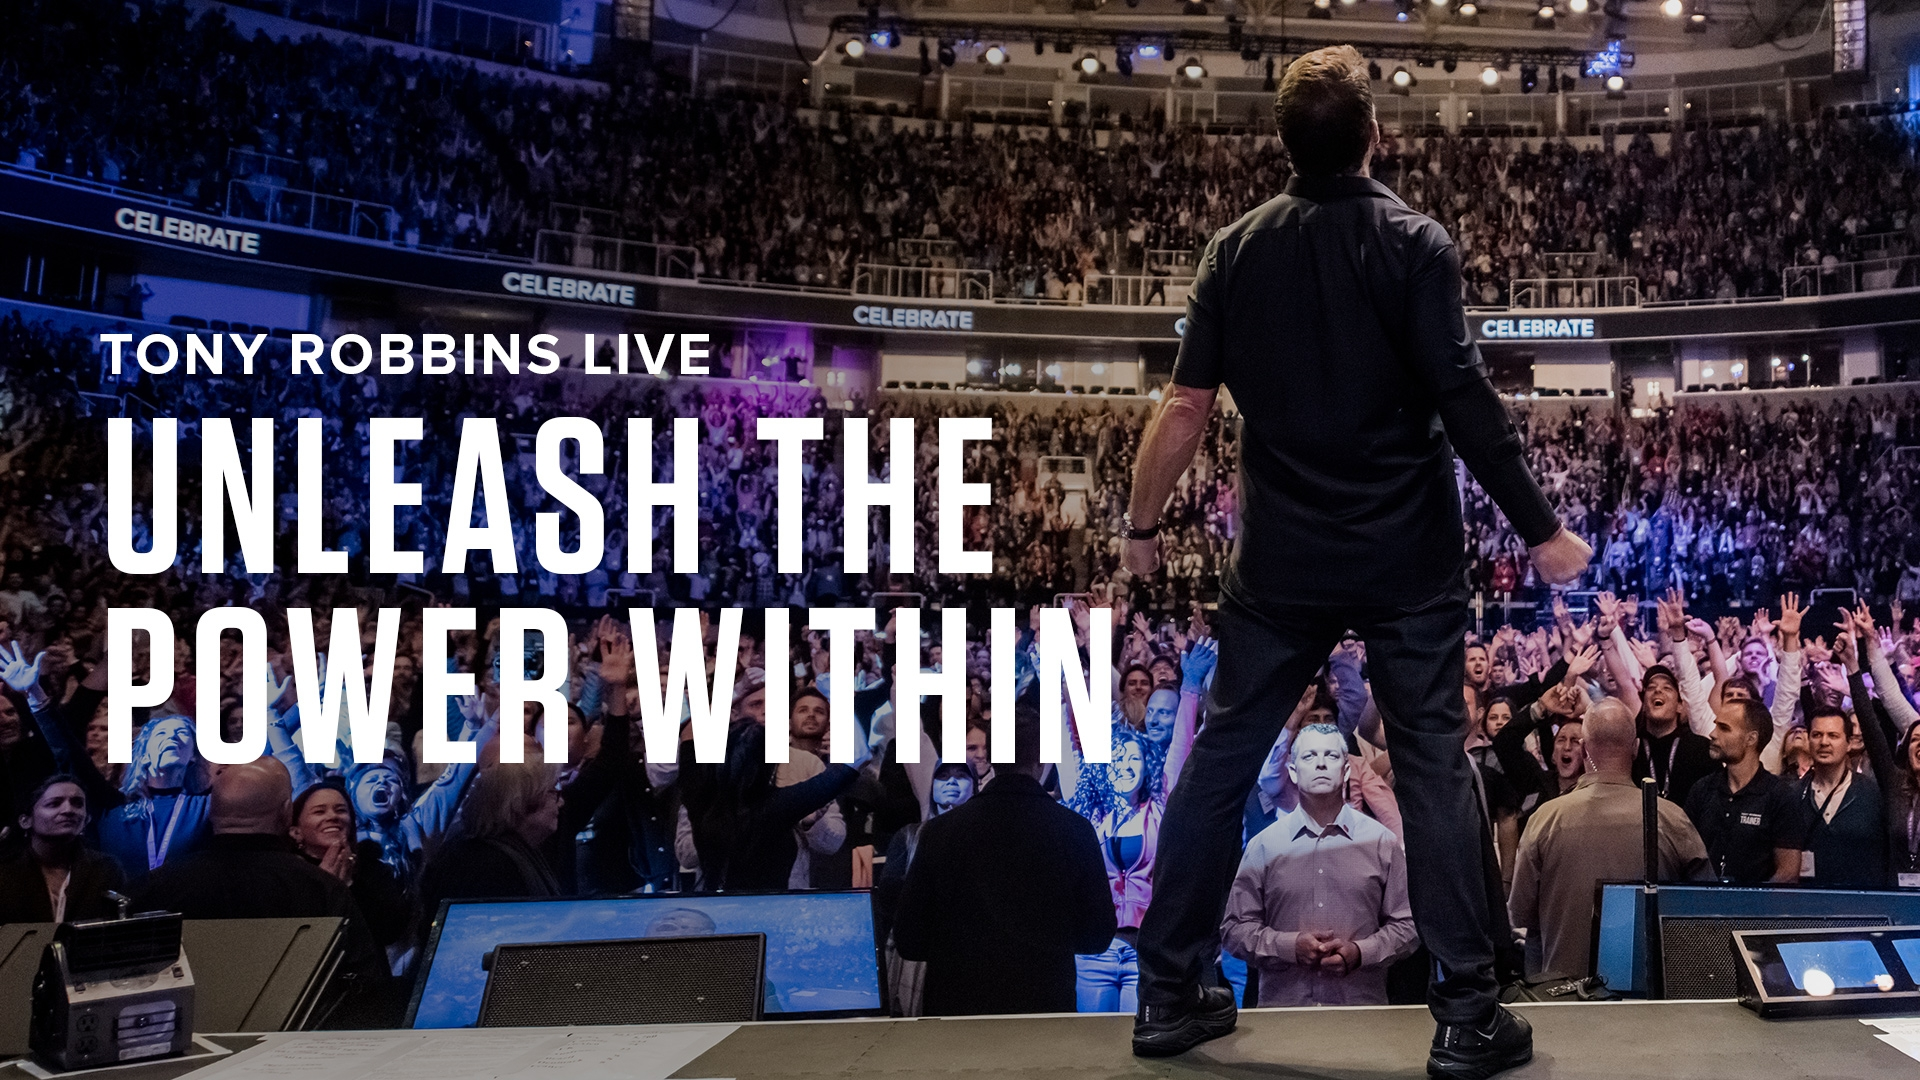 Tony Robbins' Unleash The Power Within Event, November 8-11, Newark, NJ.